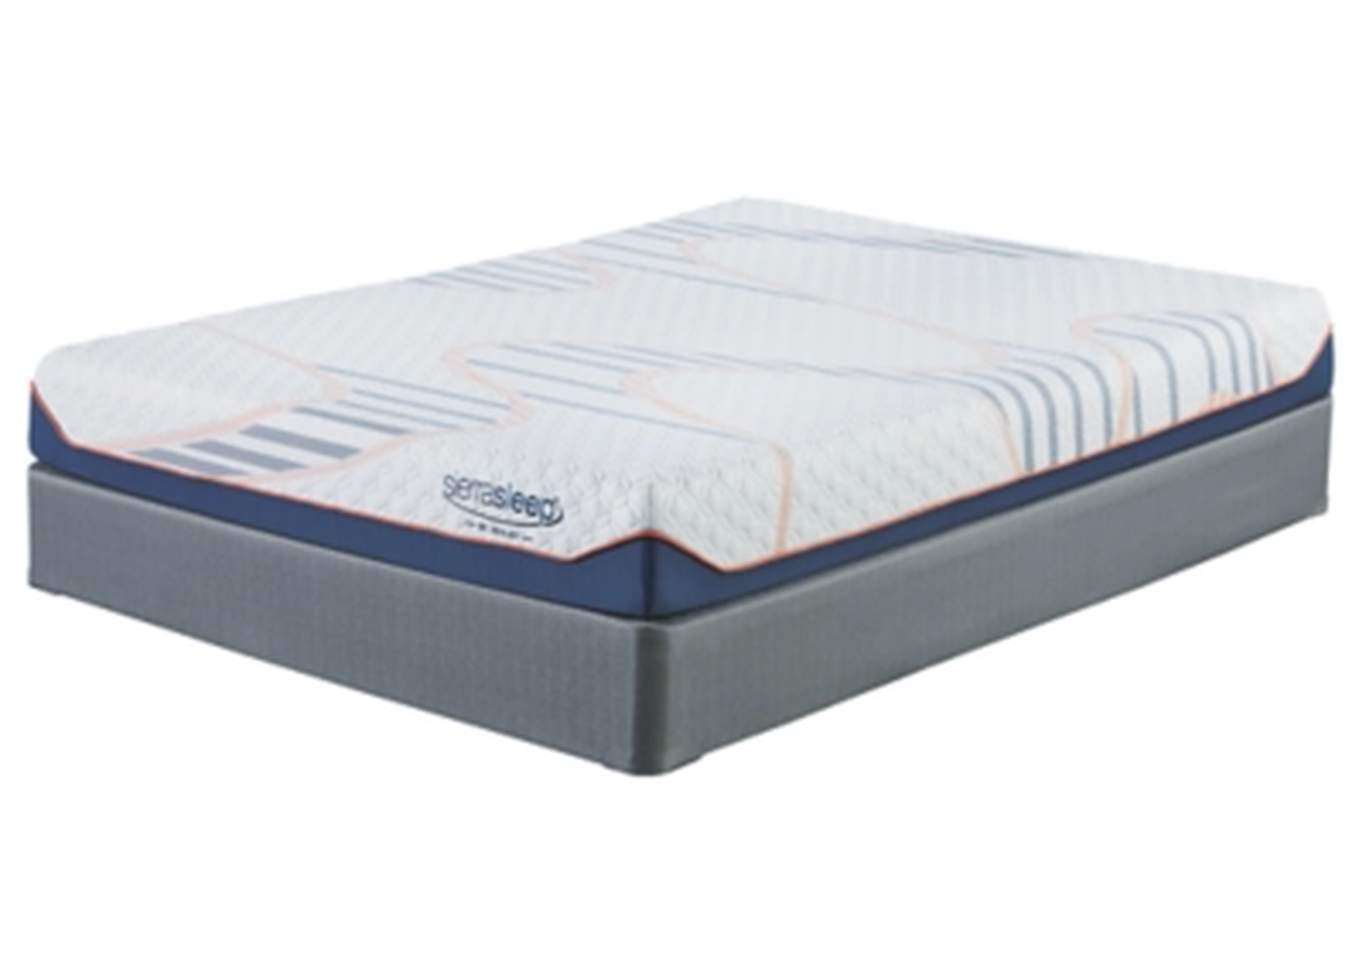 8 Inch MyGel Full Mattress,Sierra Sleep by Ashley